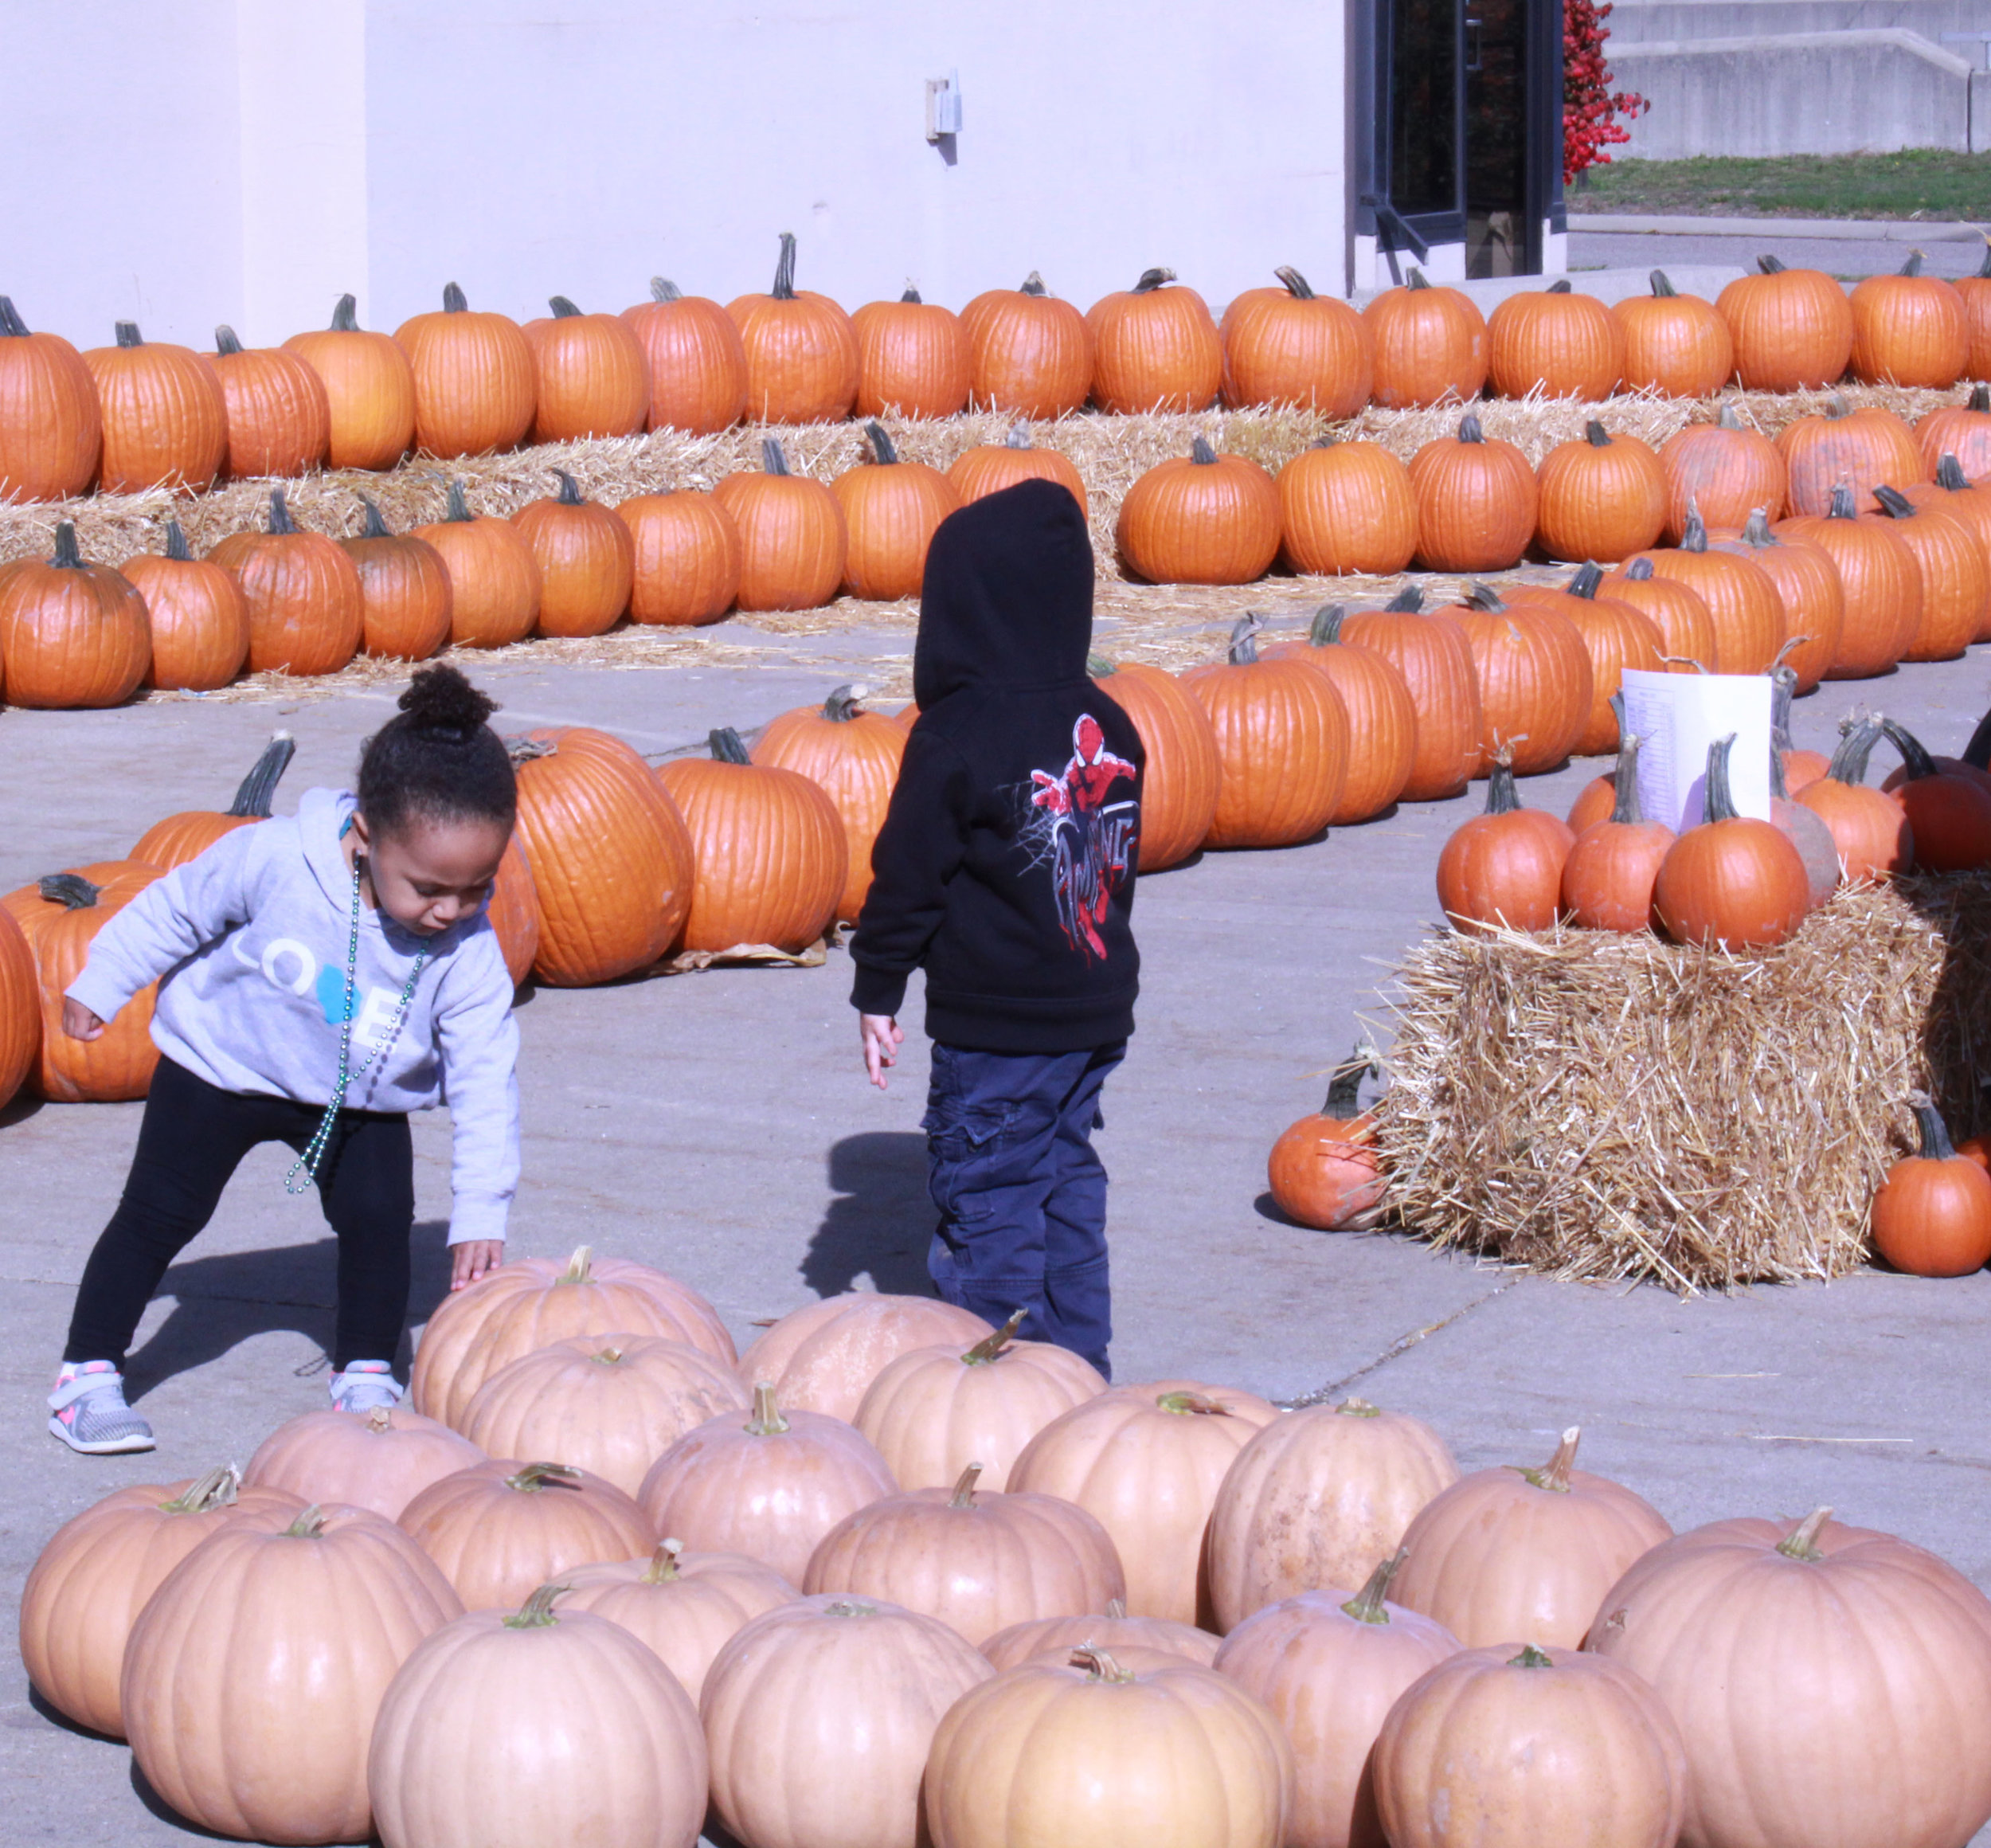 Ooh what does this do? The beautiful array of pumpkins caught the attention of everyone at the Harvest days, including the little ones.